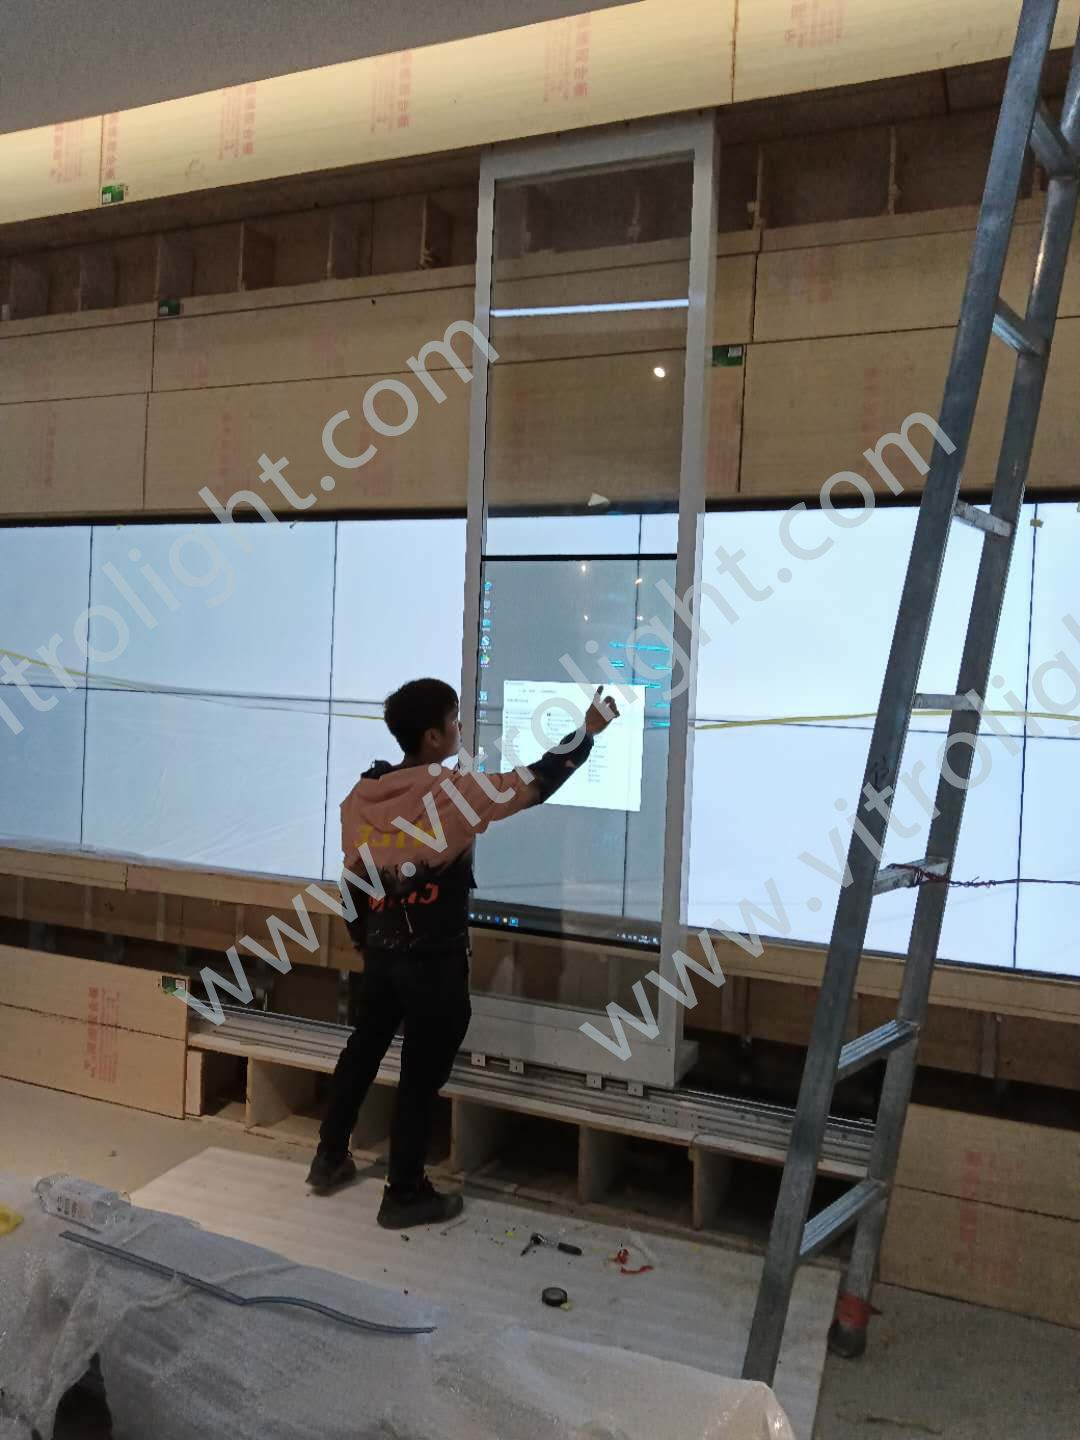 Transparent OLED touch slide screen-Shandong Binzhou Academy of Sciences Slide Project